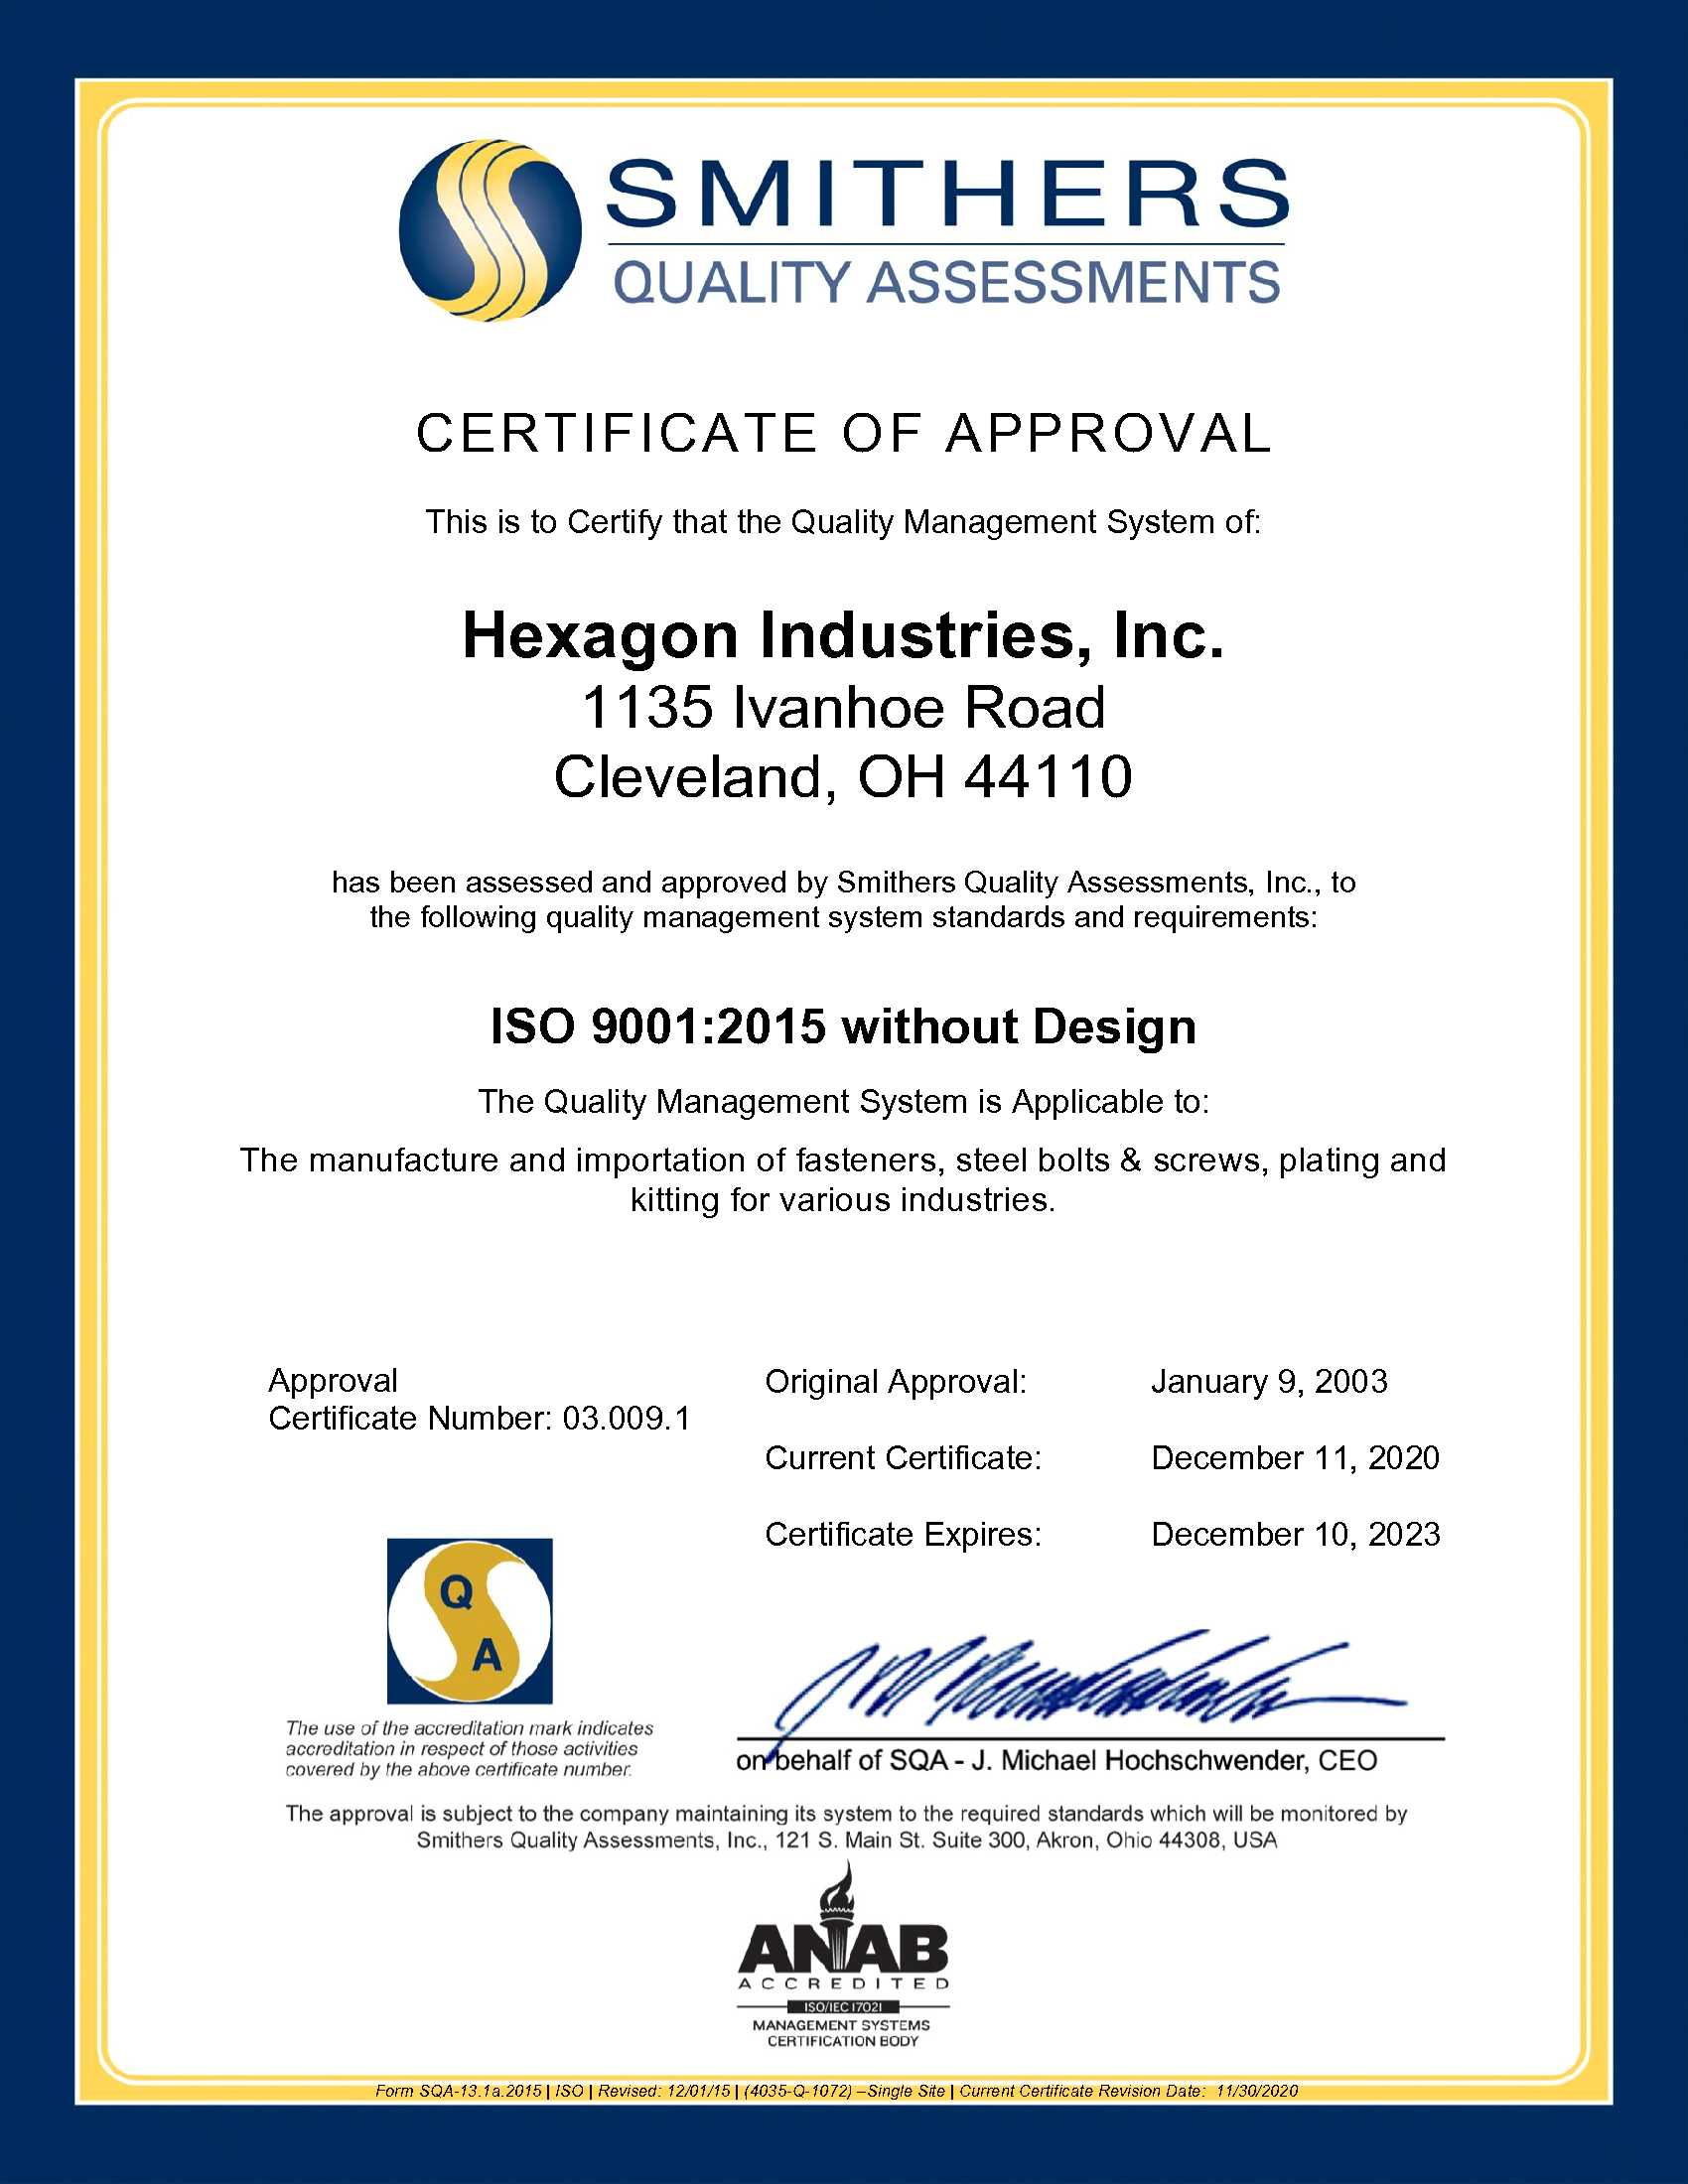 Hexagon Industries, built for quality